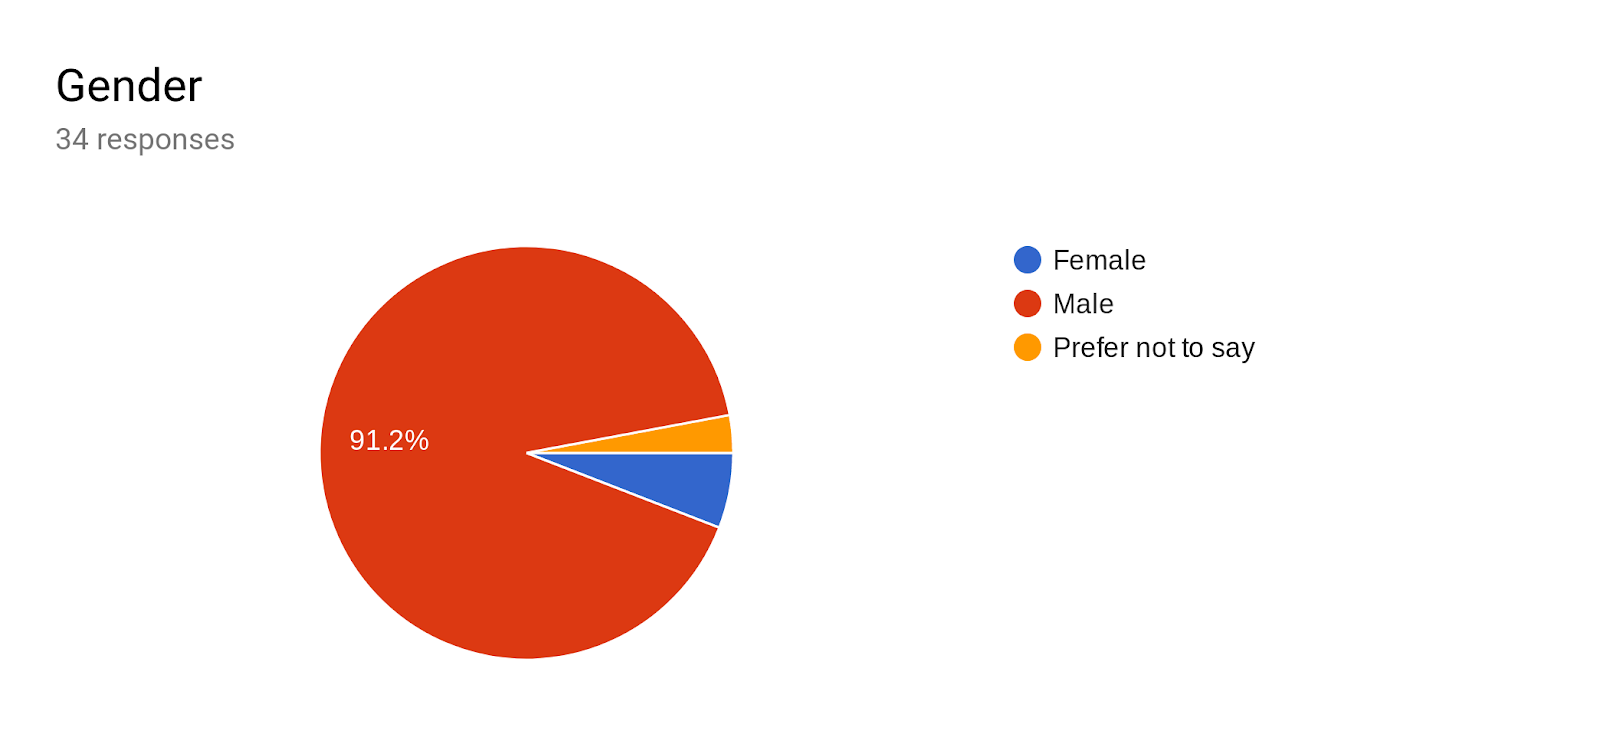 Forms response chart. Question title: Gender. Number of responses: 34 responses.